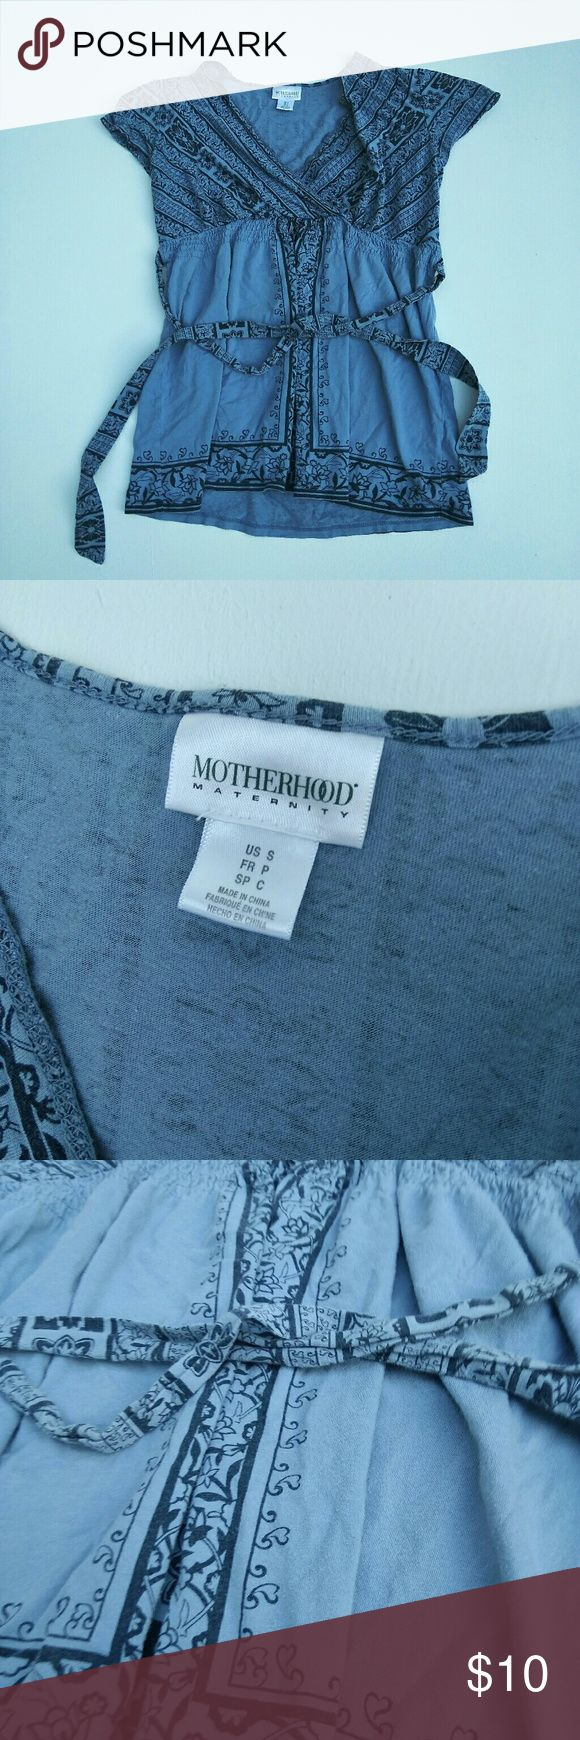 Motherhood Maternity Short Sleeve Shirt (Size: S) Blue motherhood maternity short sleeve shirt. In perfect used condition. No rips or stains. True to color Motherhood Maternity Tops Blouses